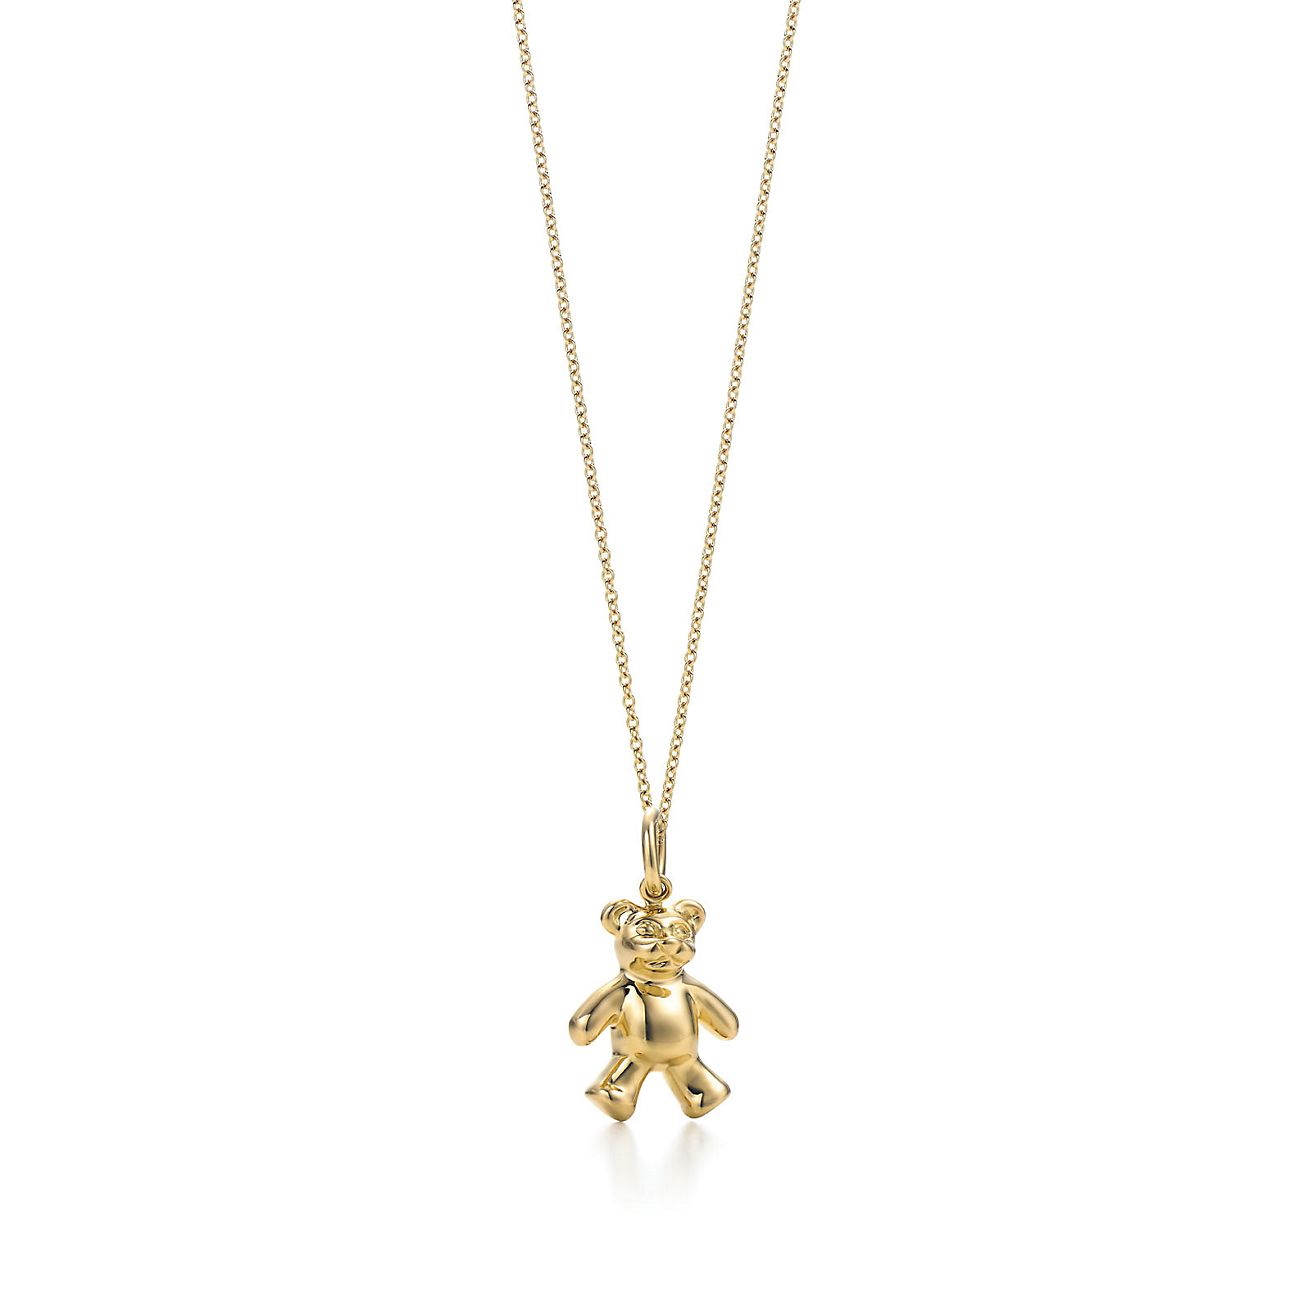 Teddy bear charm in 18k gold on a chain tiffany co teddy bear charm and chain aloadofball Images